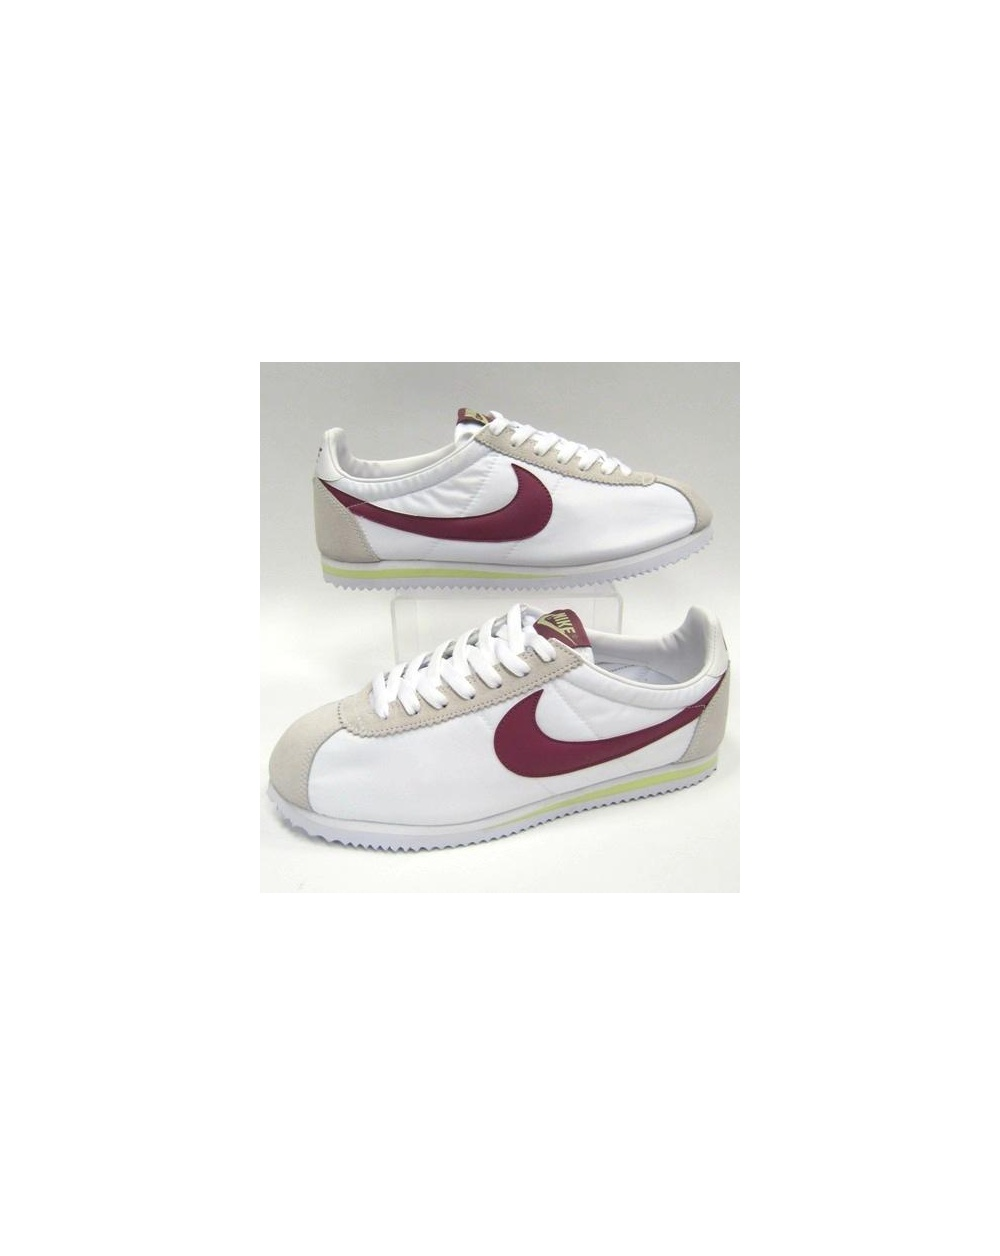 newest a3a0c af4ac Nike Cortez Trainers Nylon White/maroon